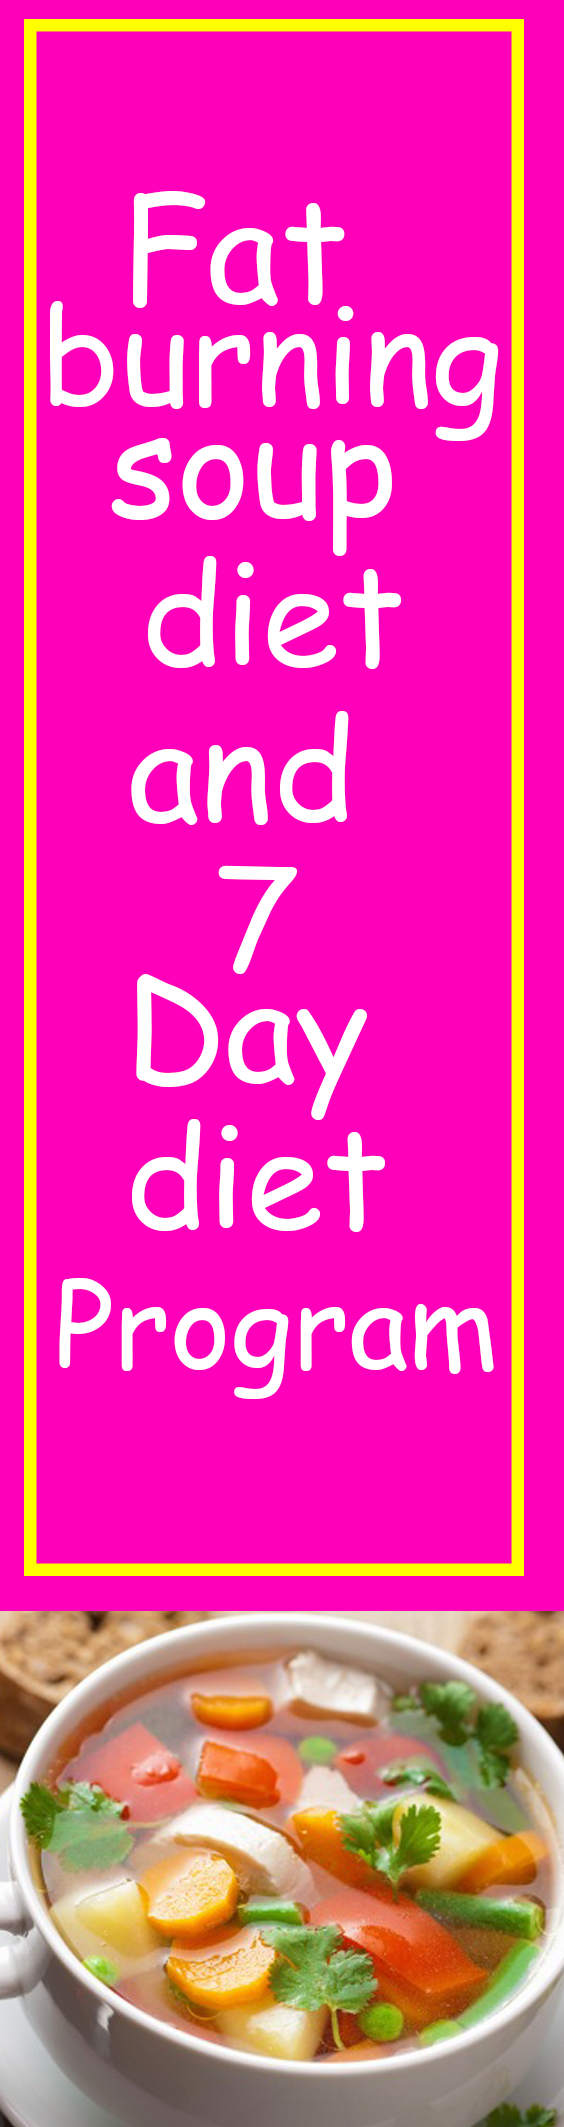 Diet plans 5 small meals a day